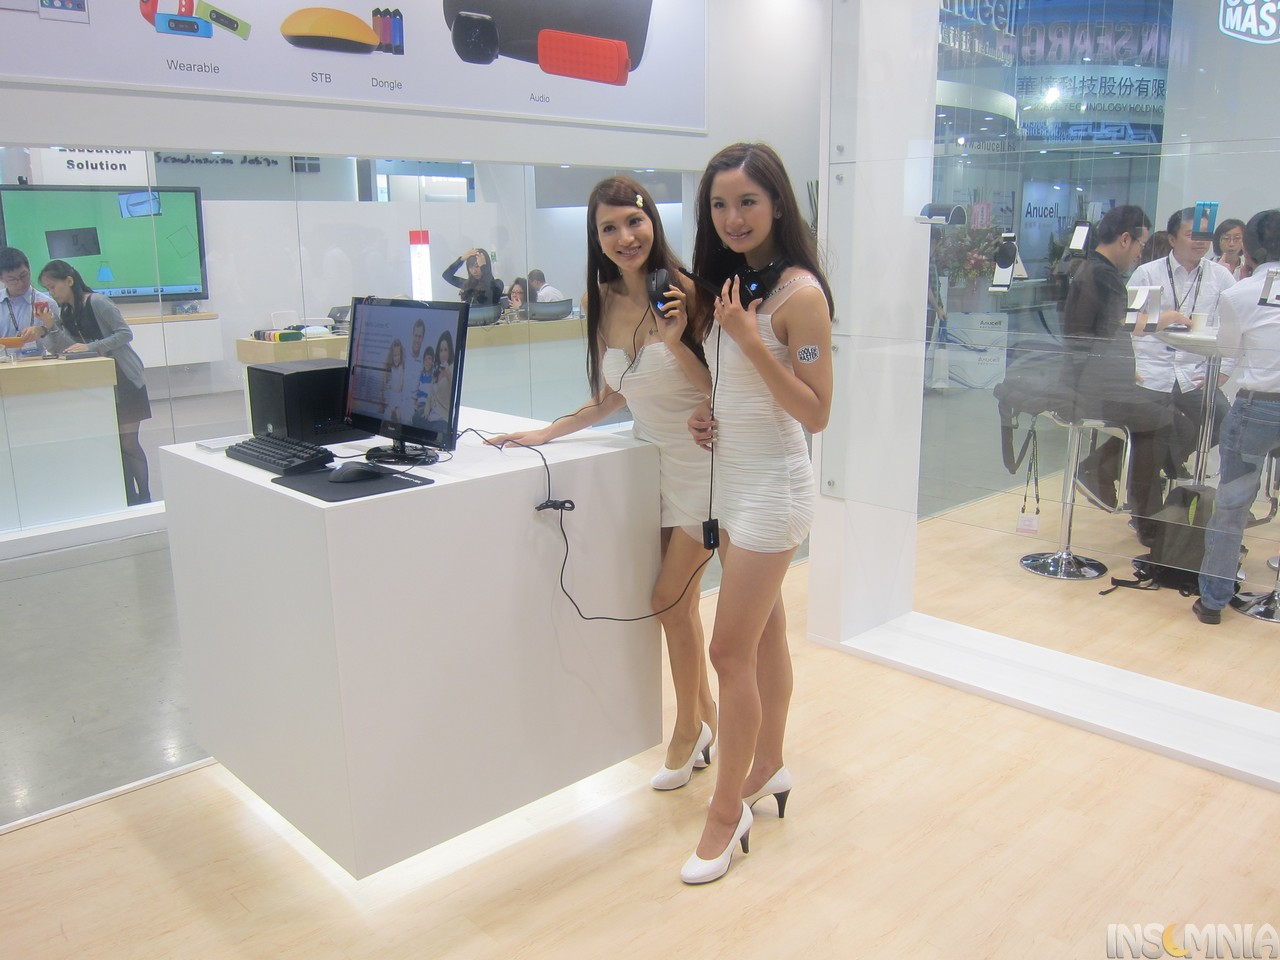 Computex 2014 - Booth Babes